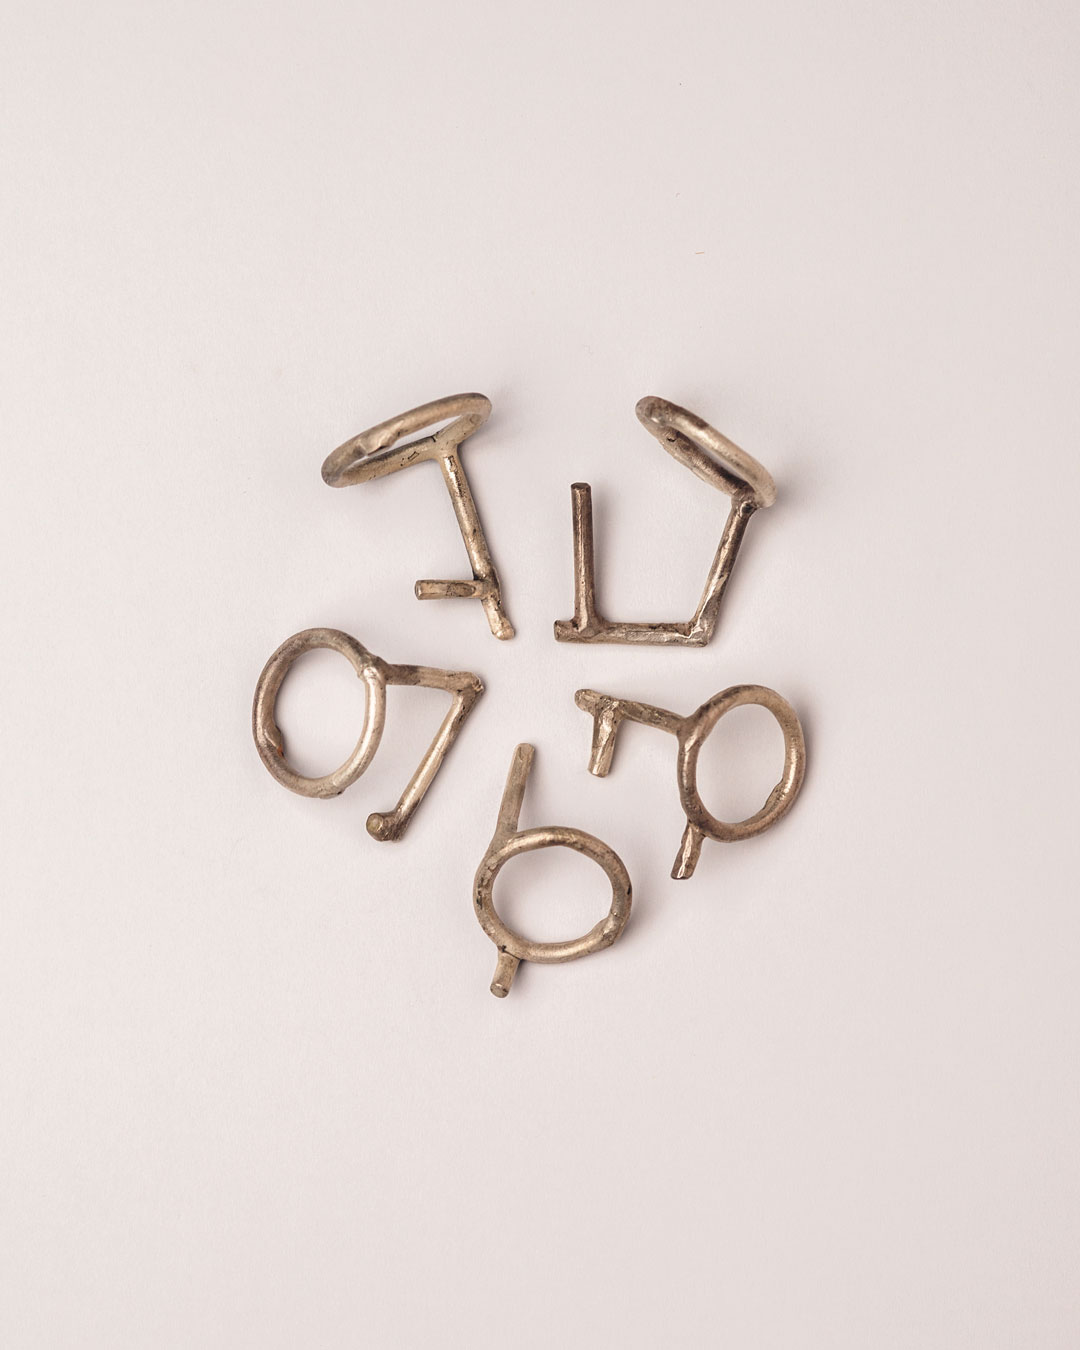 Antje Bräuer, untitled, 2018, rings; silver, 34 x 26 x 26 mm, €250 each